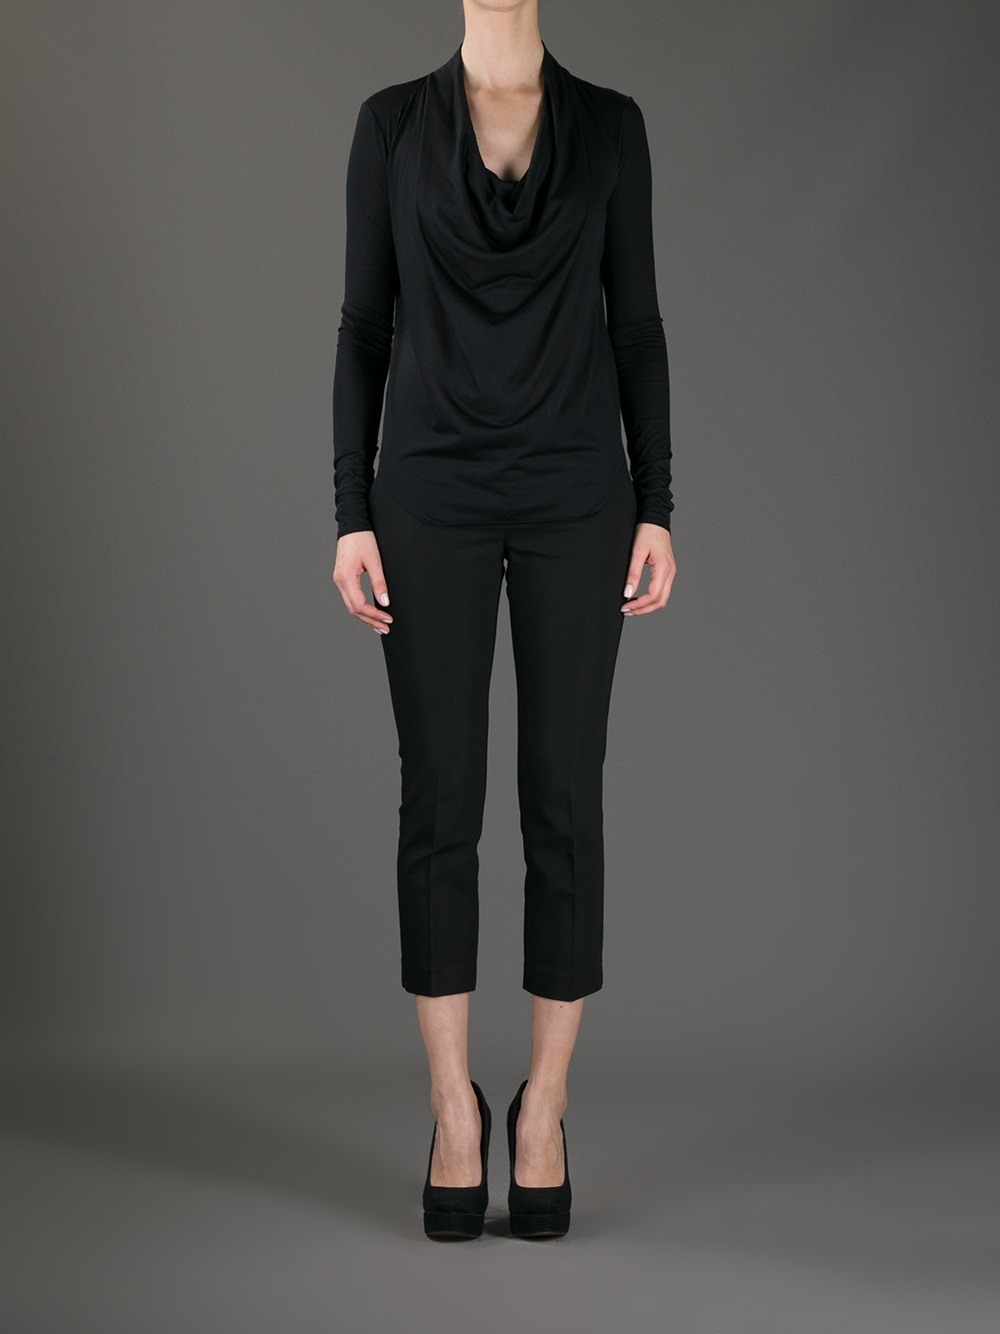 437fbf4772ab9b Lyst - Helmut Lang Draped Cowl Neck Top in Black